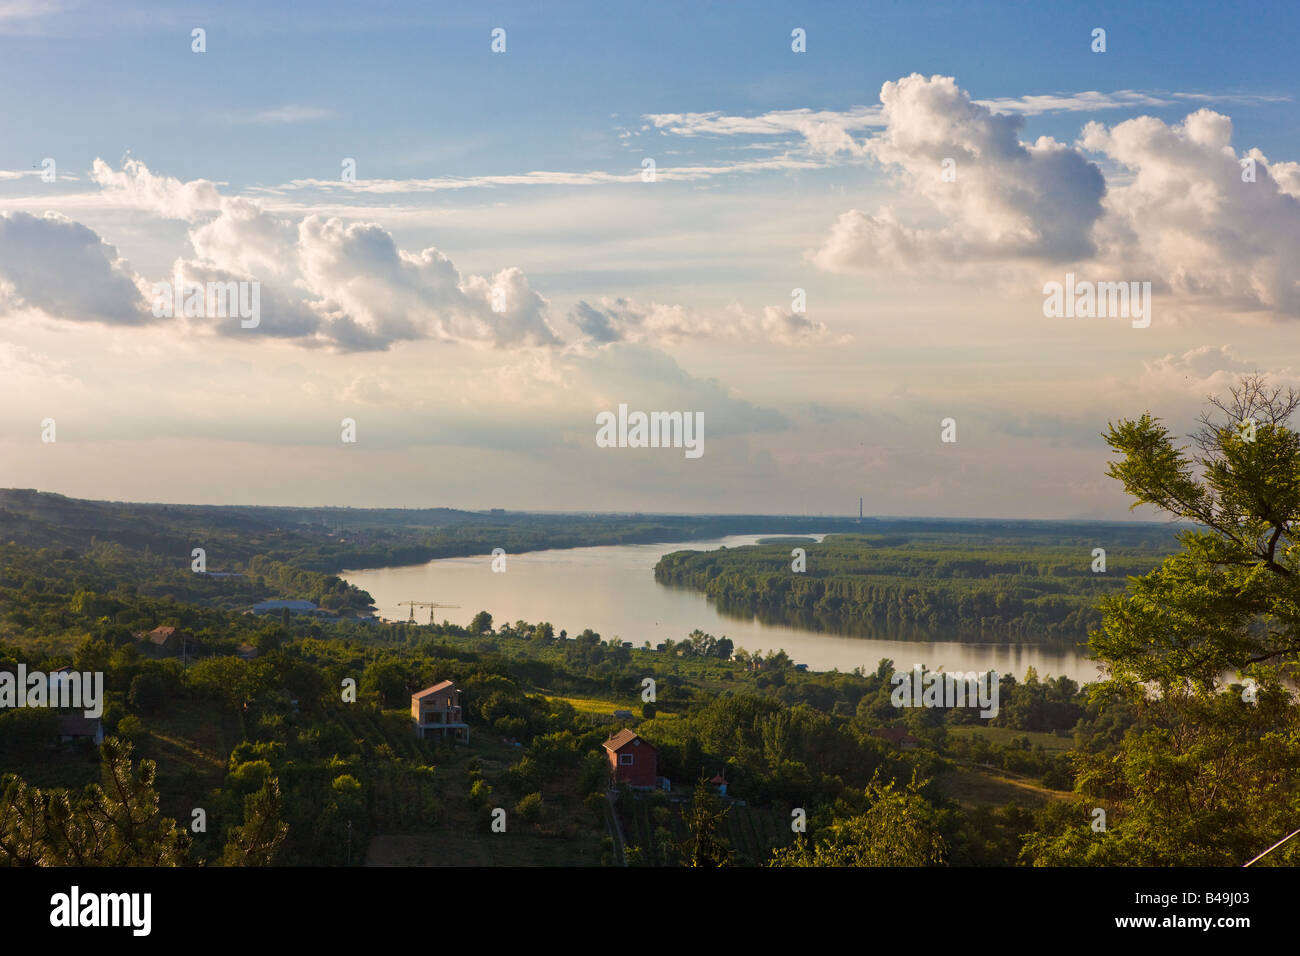 Along the Danube River in the Vojvodina region of northern Serbia looking north towards the city of Novi Sad - Stock Image